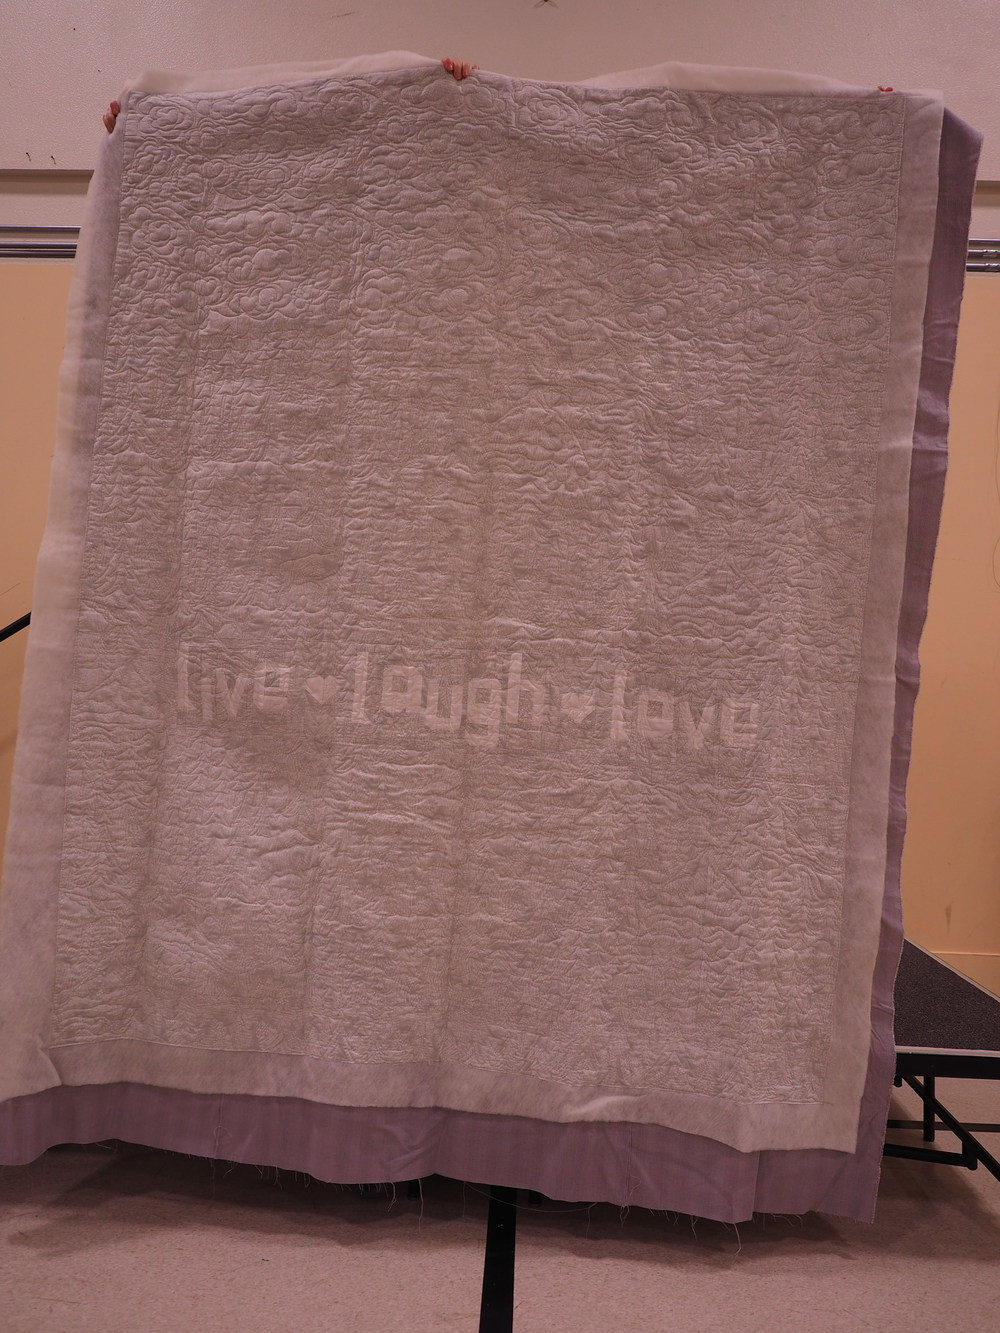 Kristan Collins  Live, Laugh, Love Wedding Quilt  Quilted by Nancy Stovall